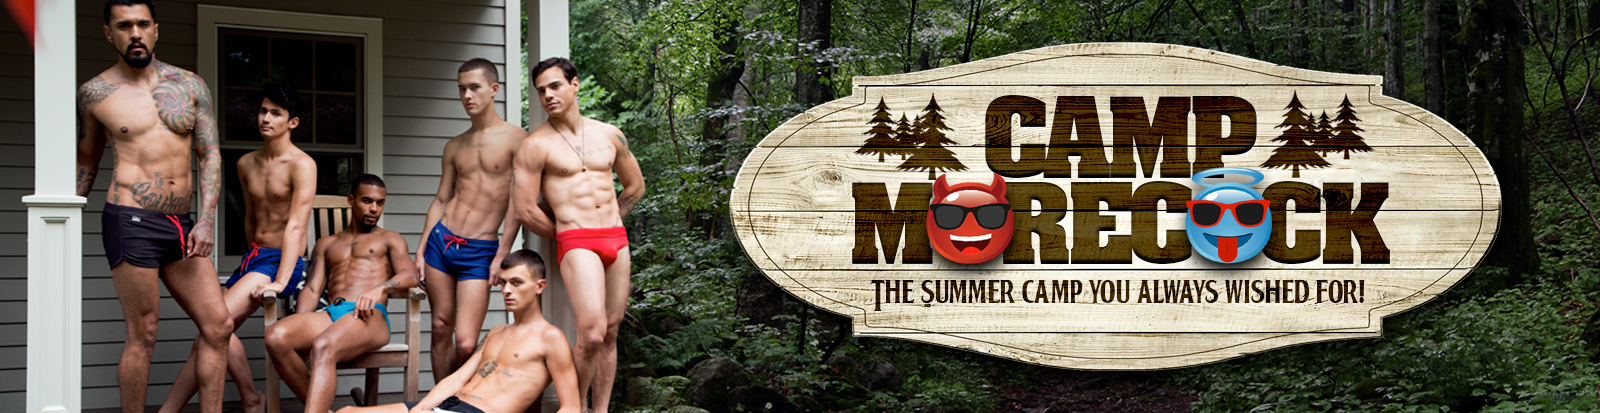 Camp Morecock Featured Move Banner